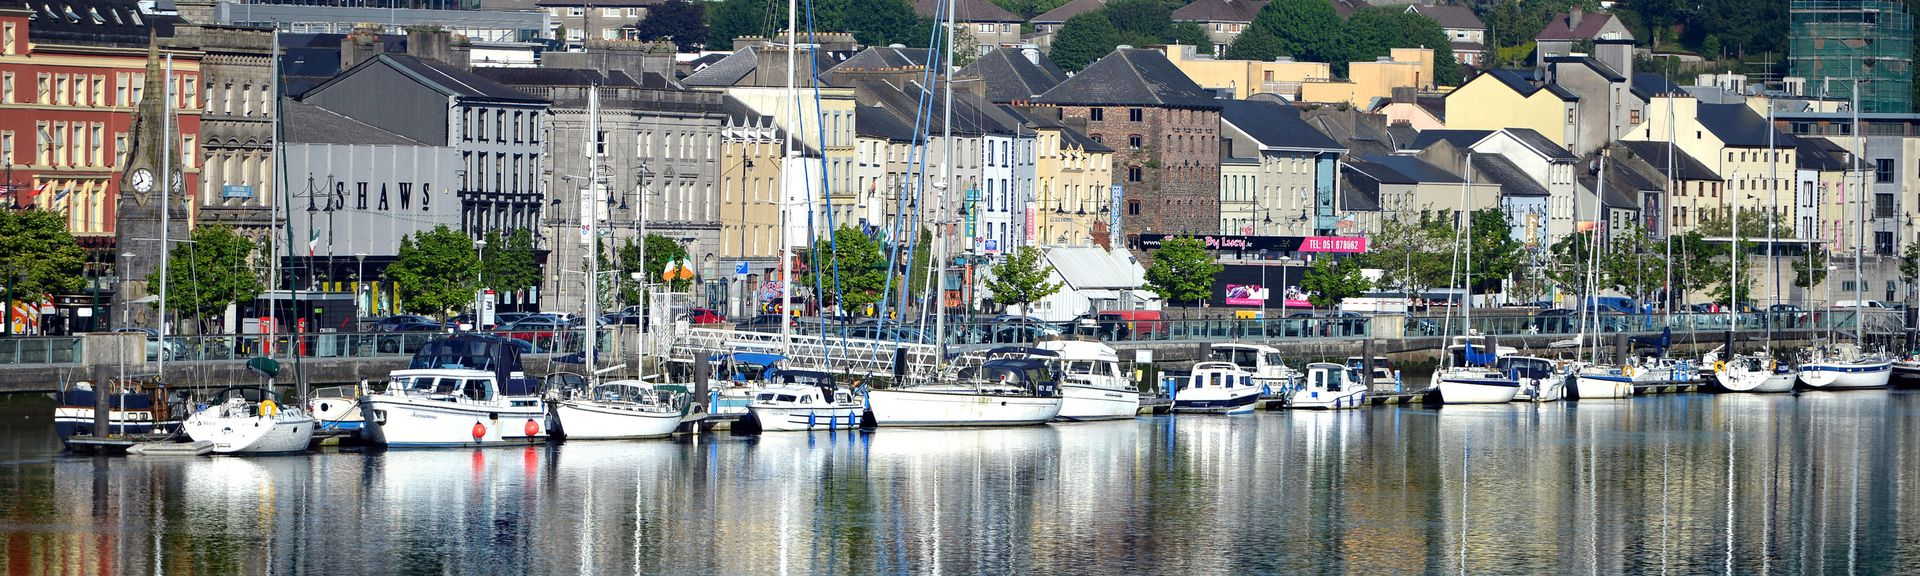 Waterford, Waterford (comté), Irlande